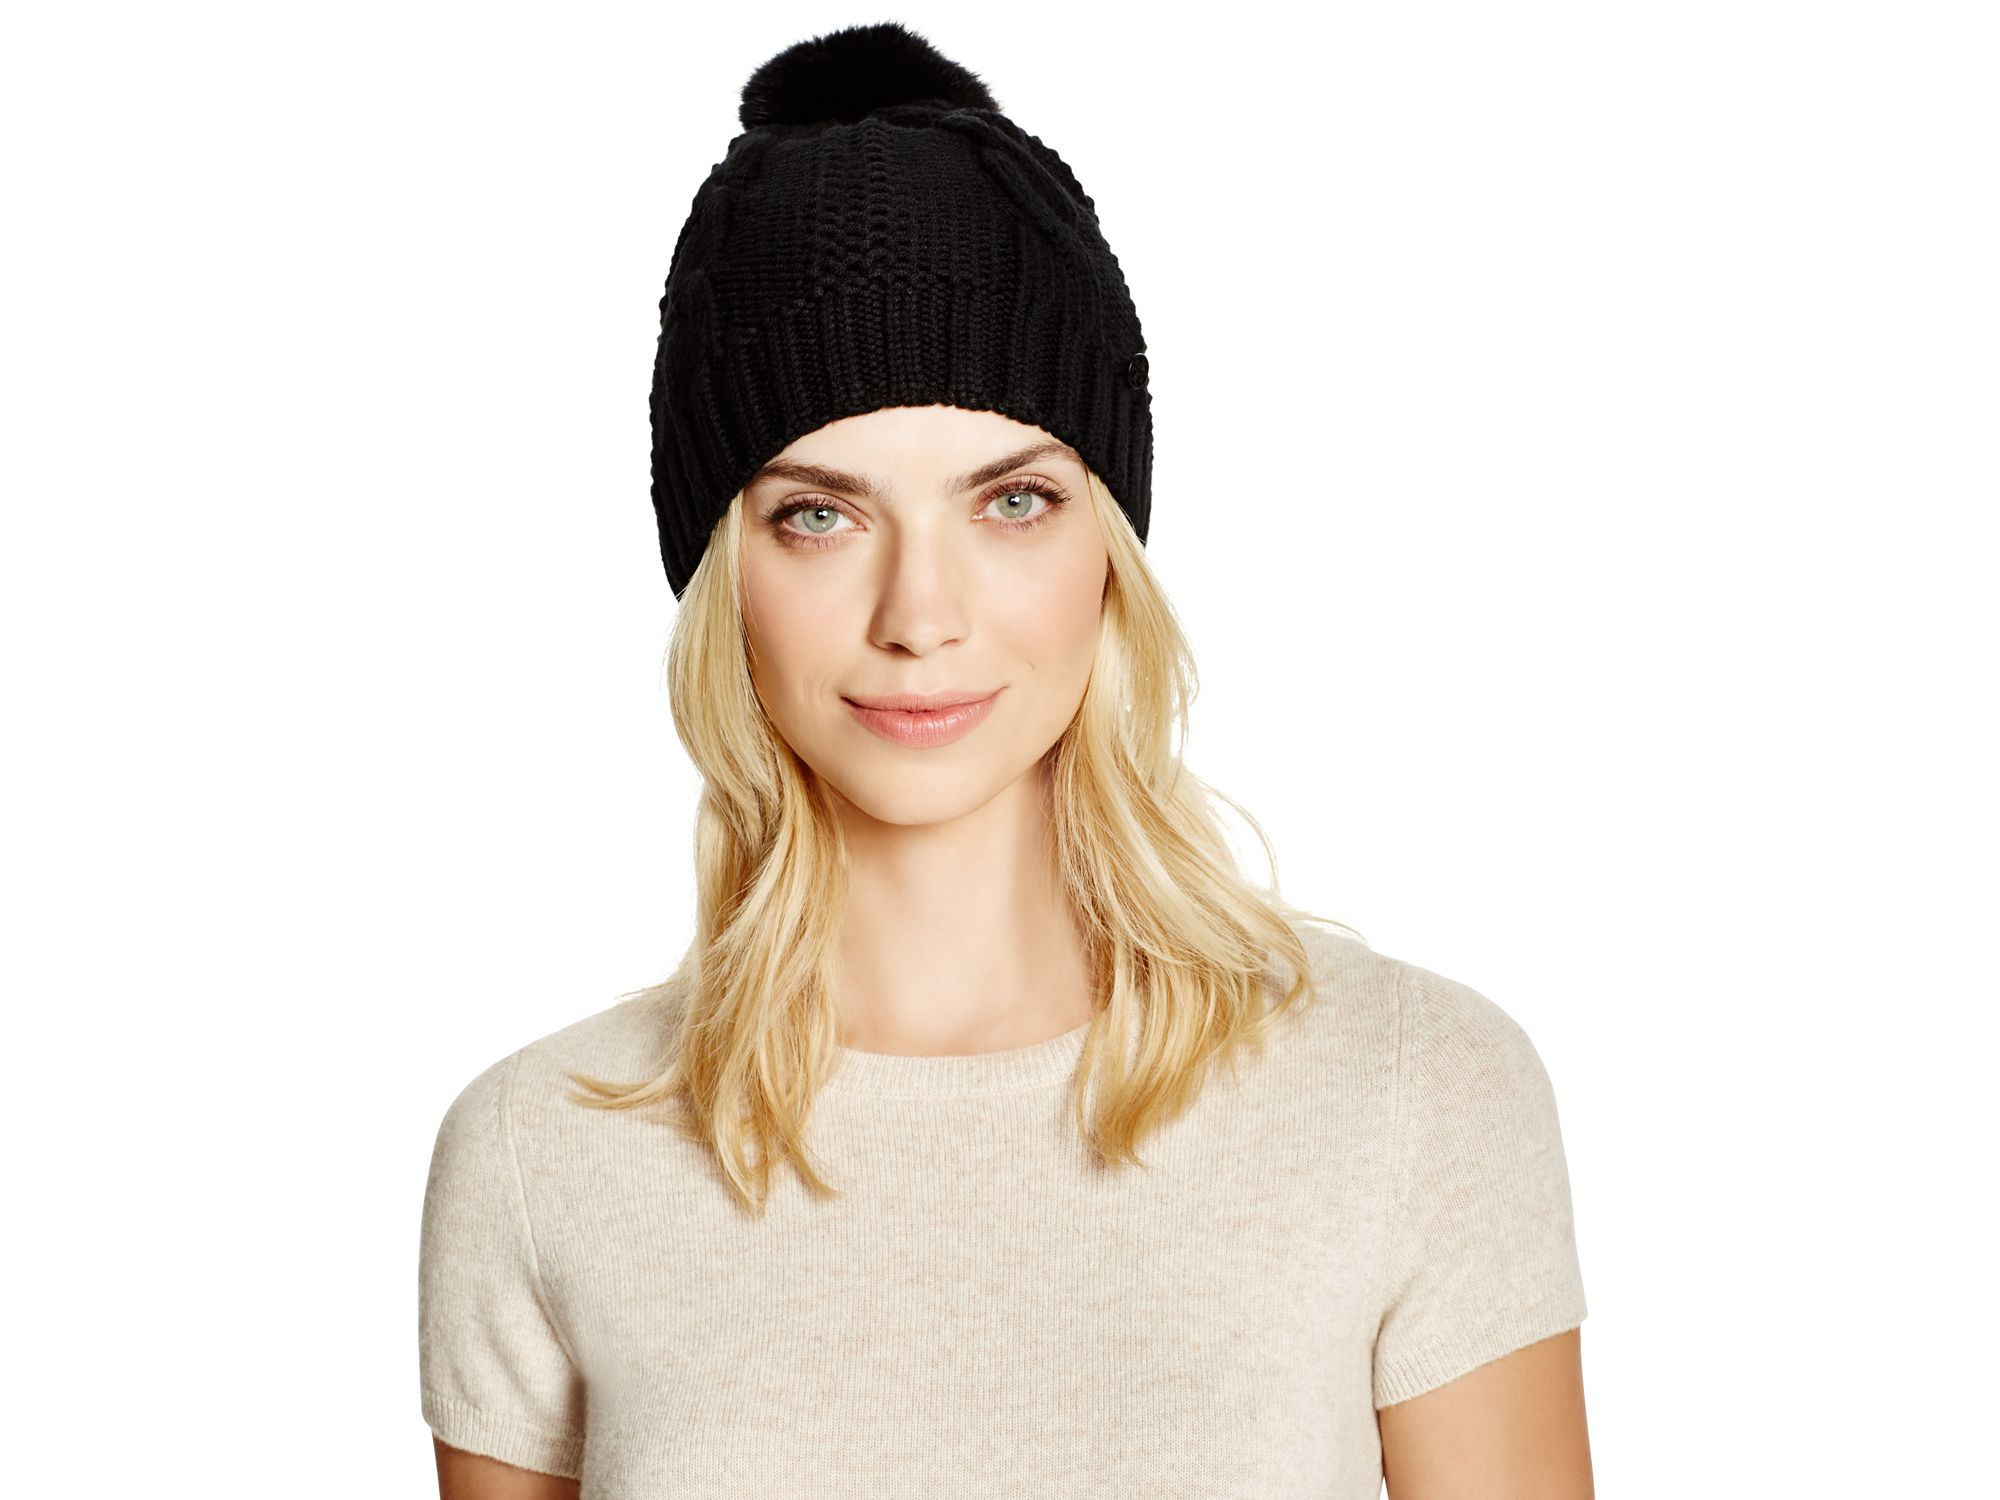 14135d5e1c5 Lyst - Tory Burch Cable Knit Beanie With Rabbit Fur Pom-pom in Black